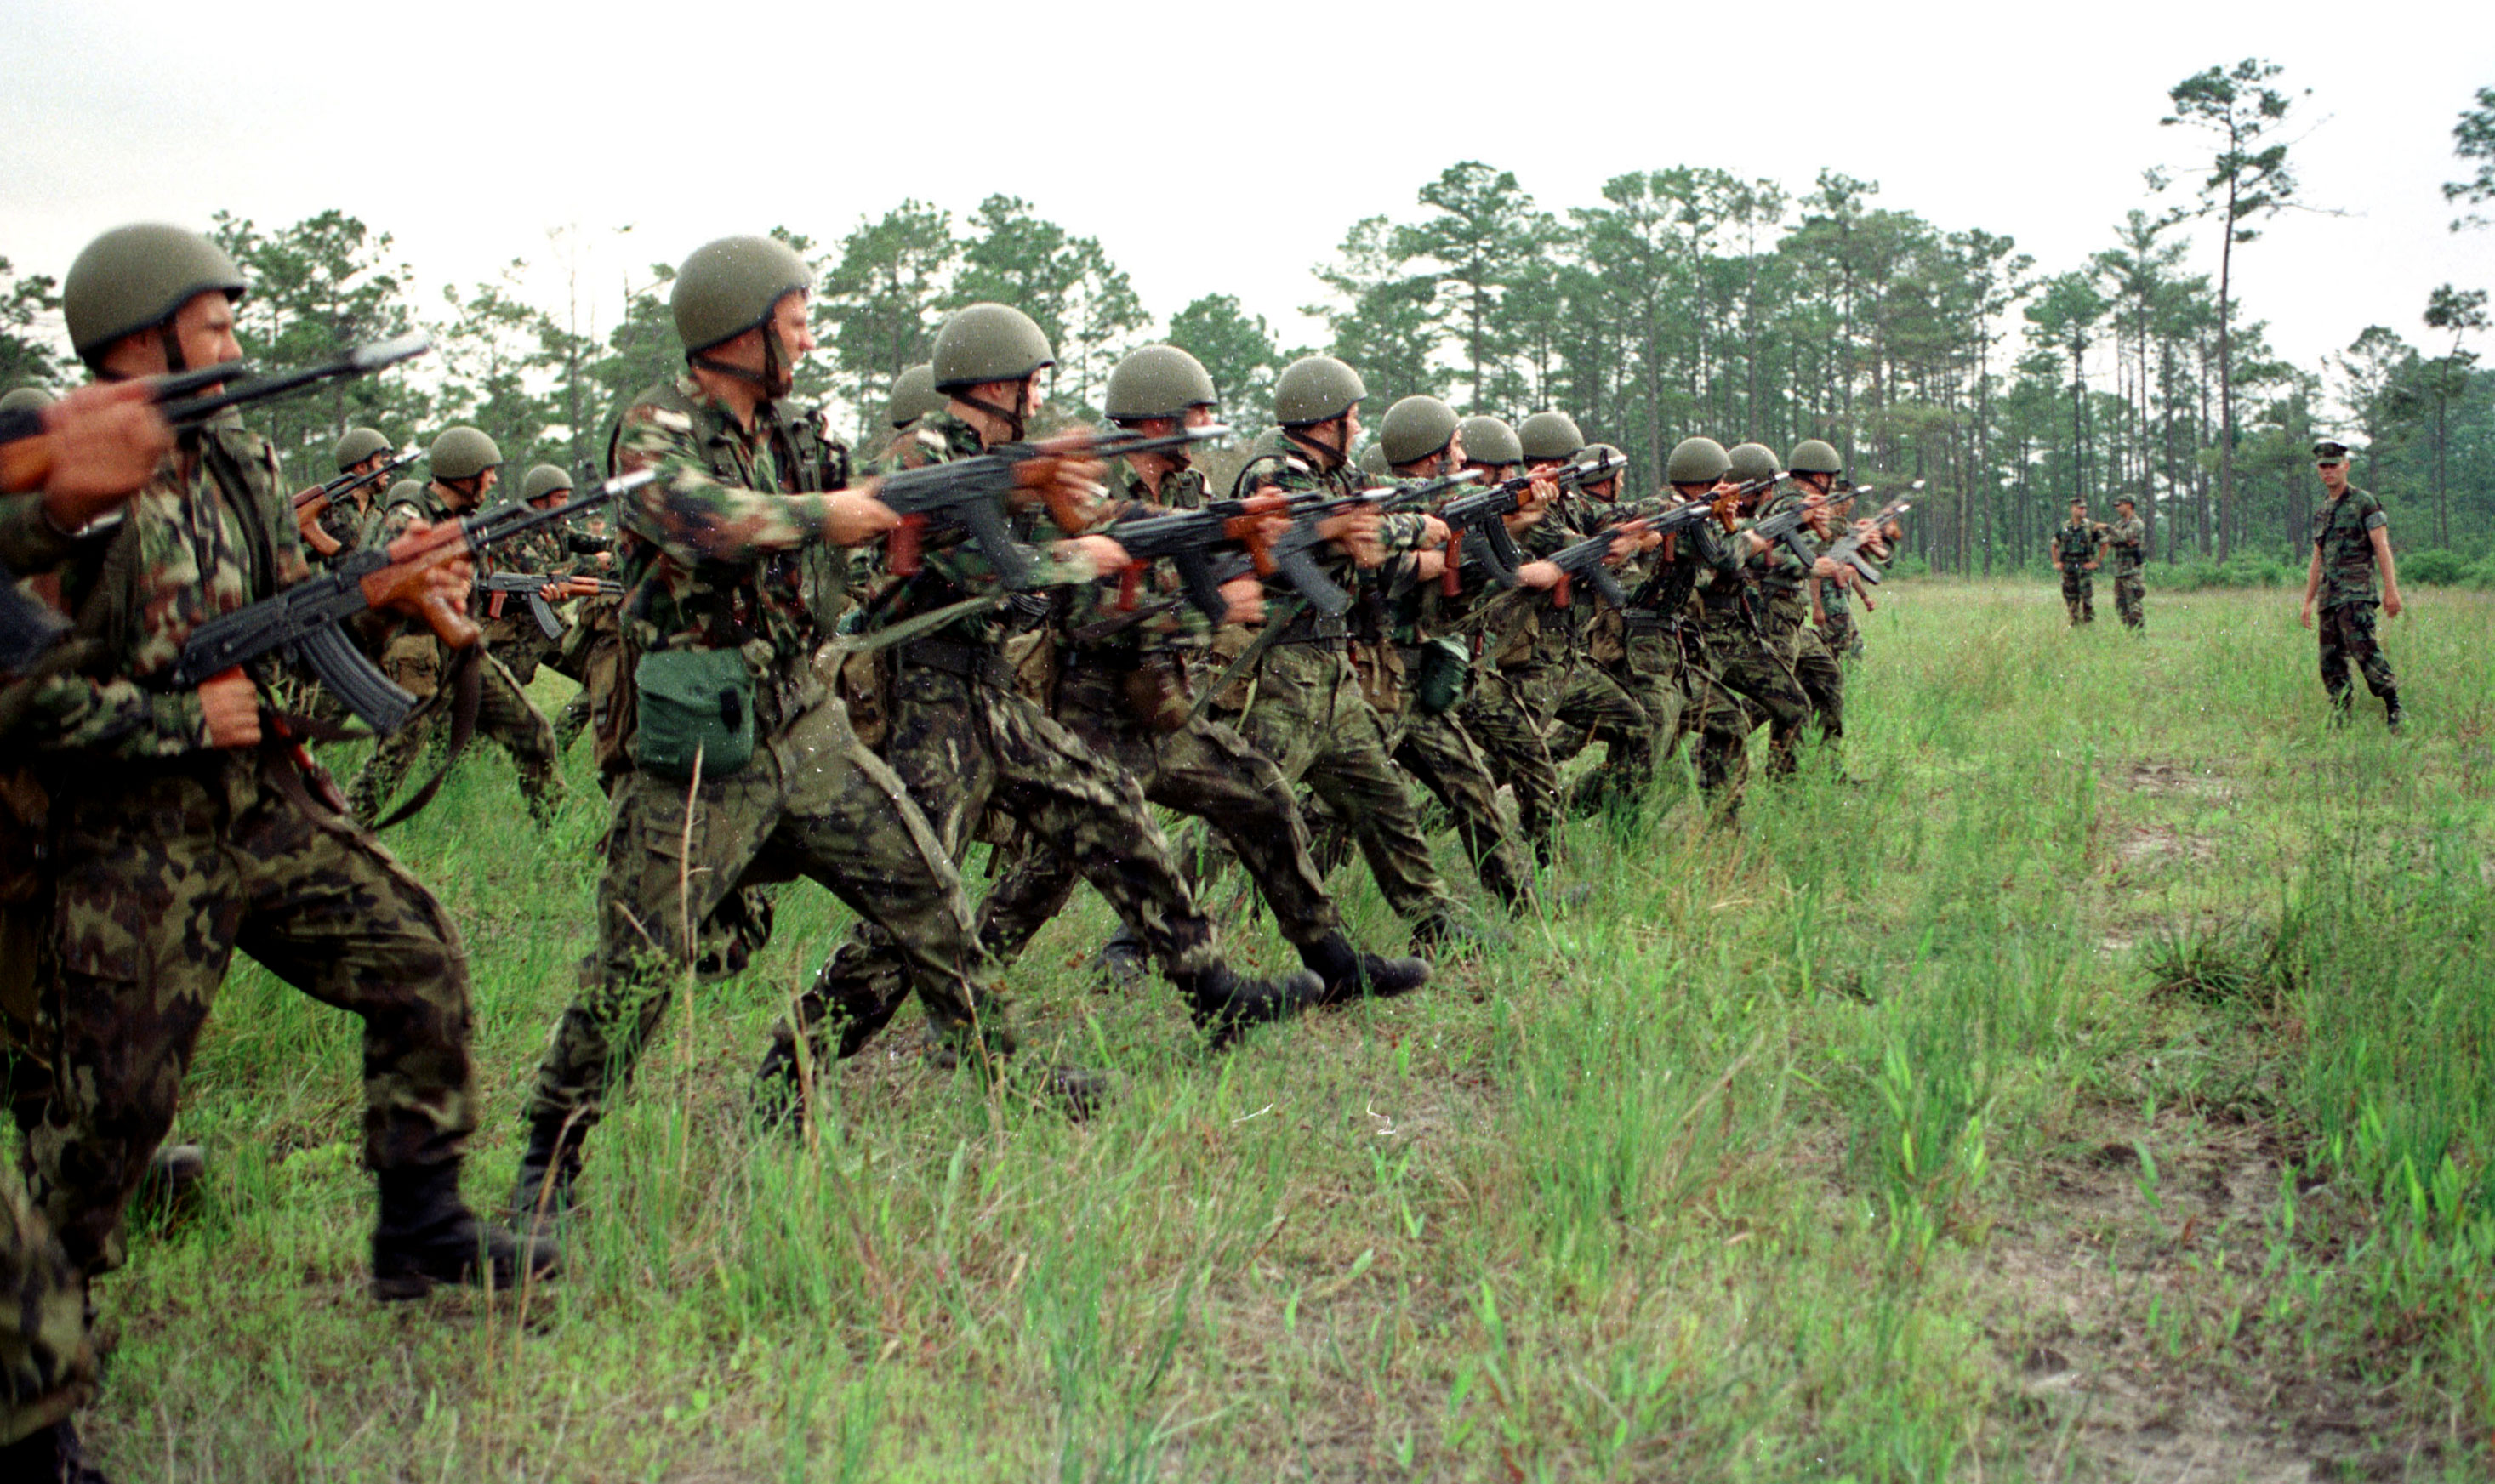 File:Romanian Soldiers Partnership for Peace (PfP) 1998 ...